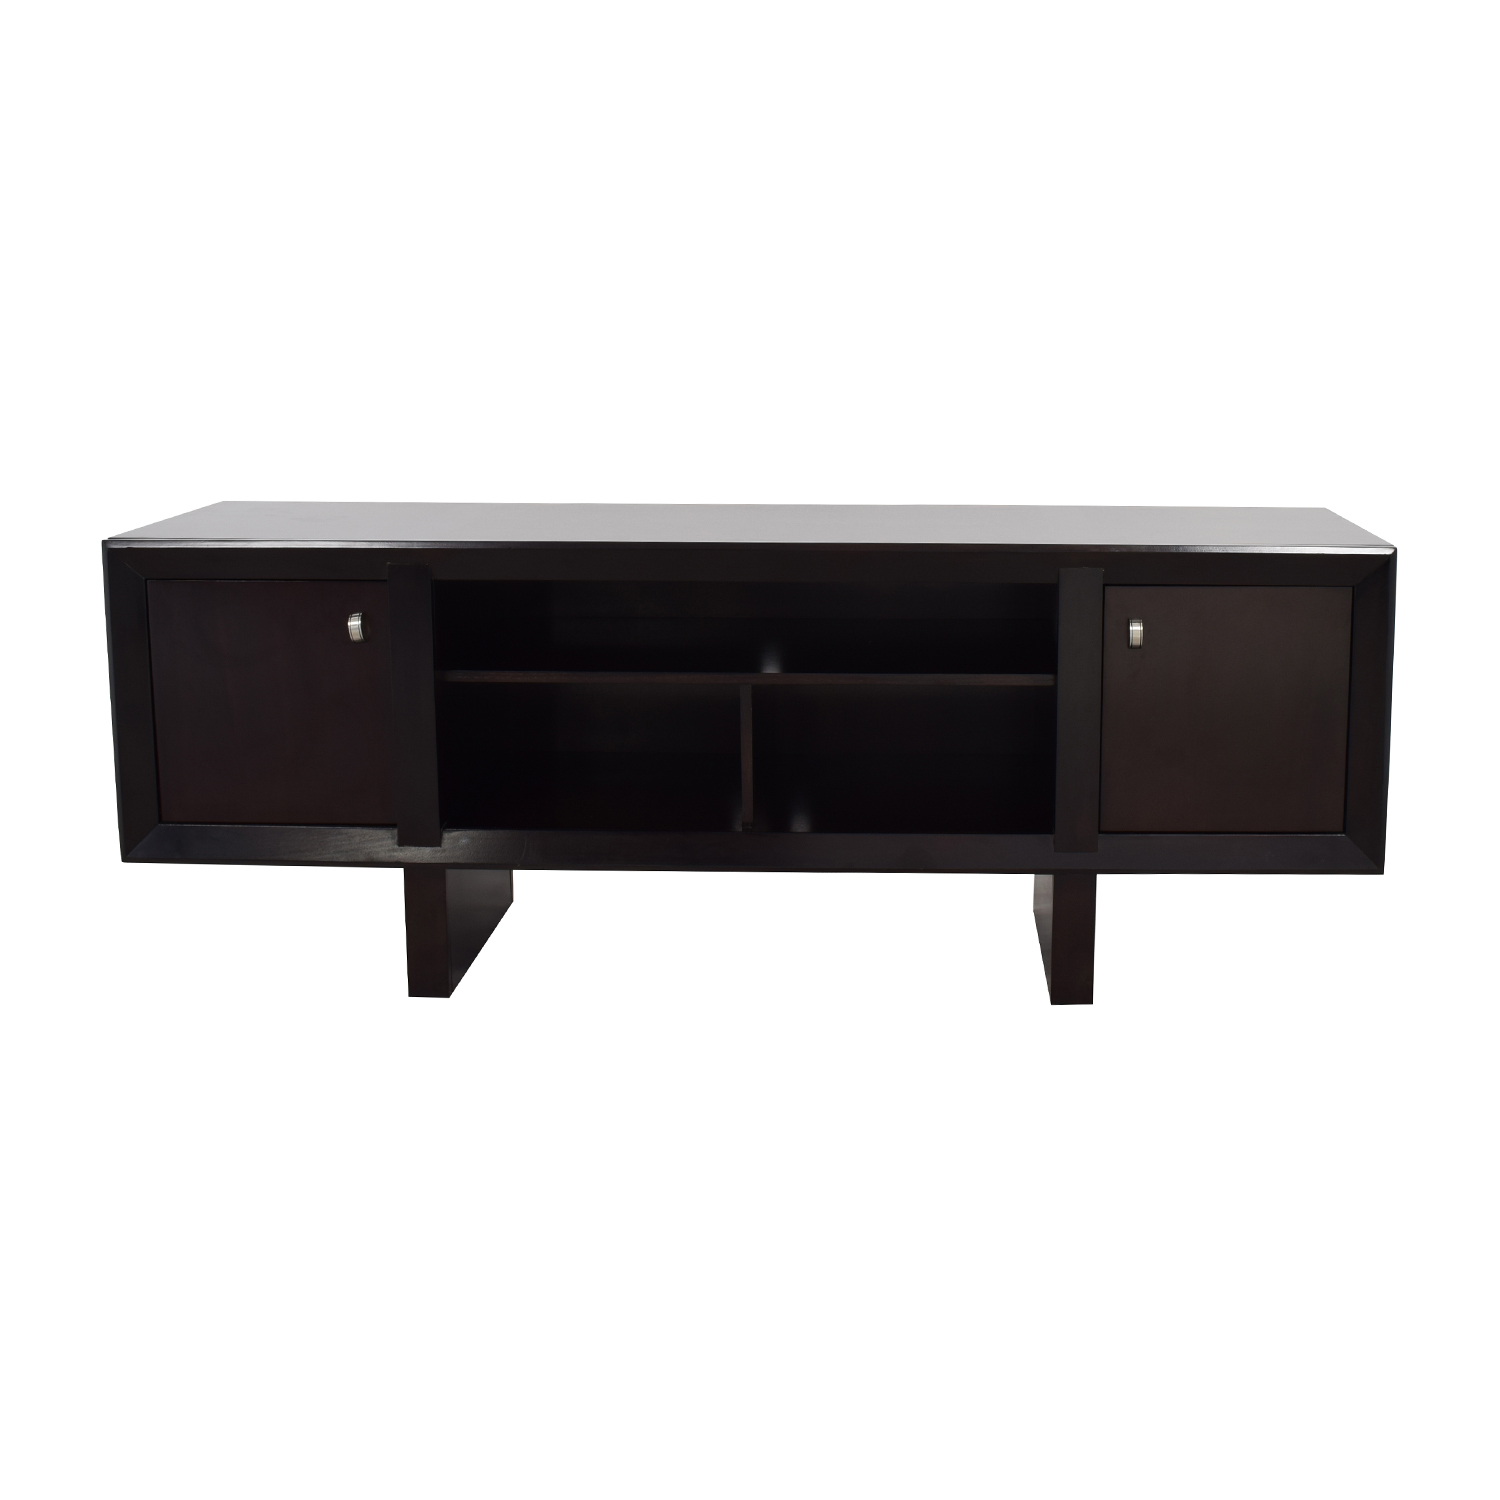 Raymour and Flanigan Raymour & Flanigan Park Avenue Black TV Stand black